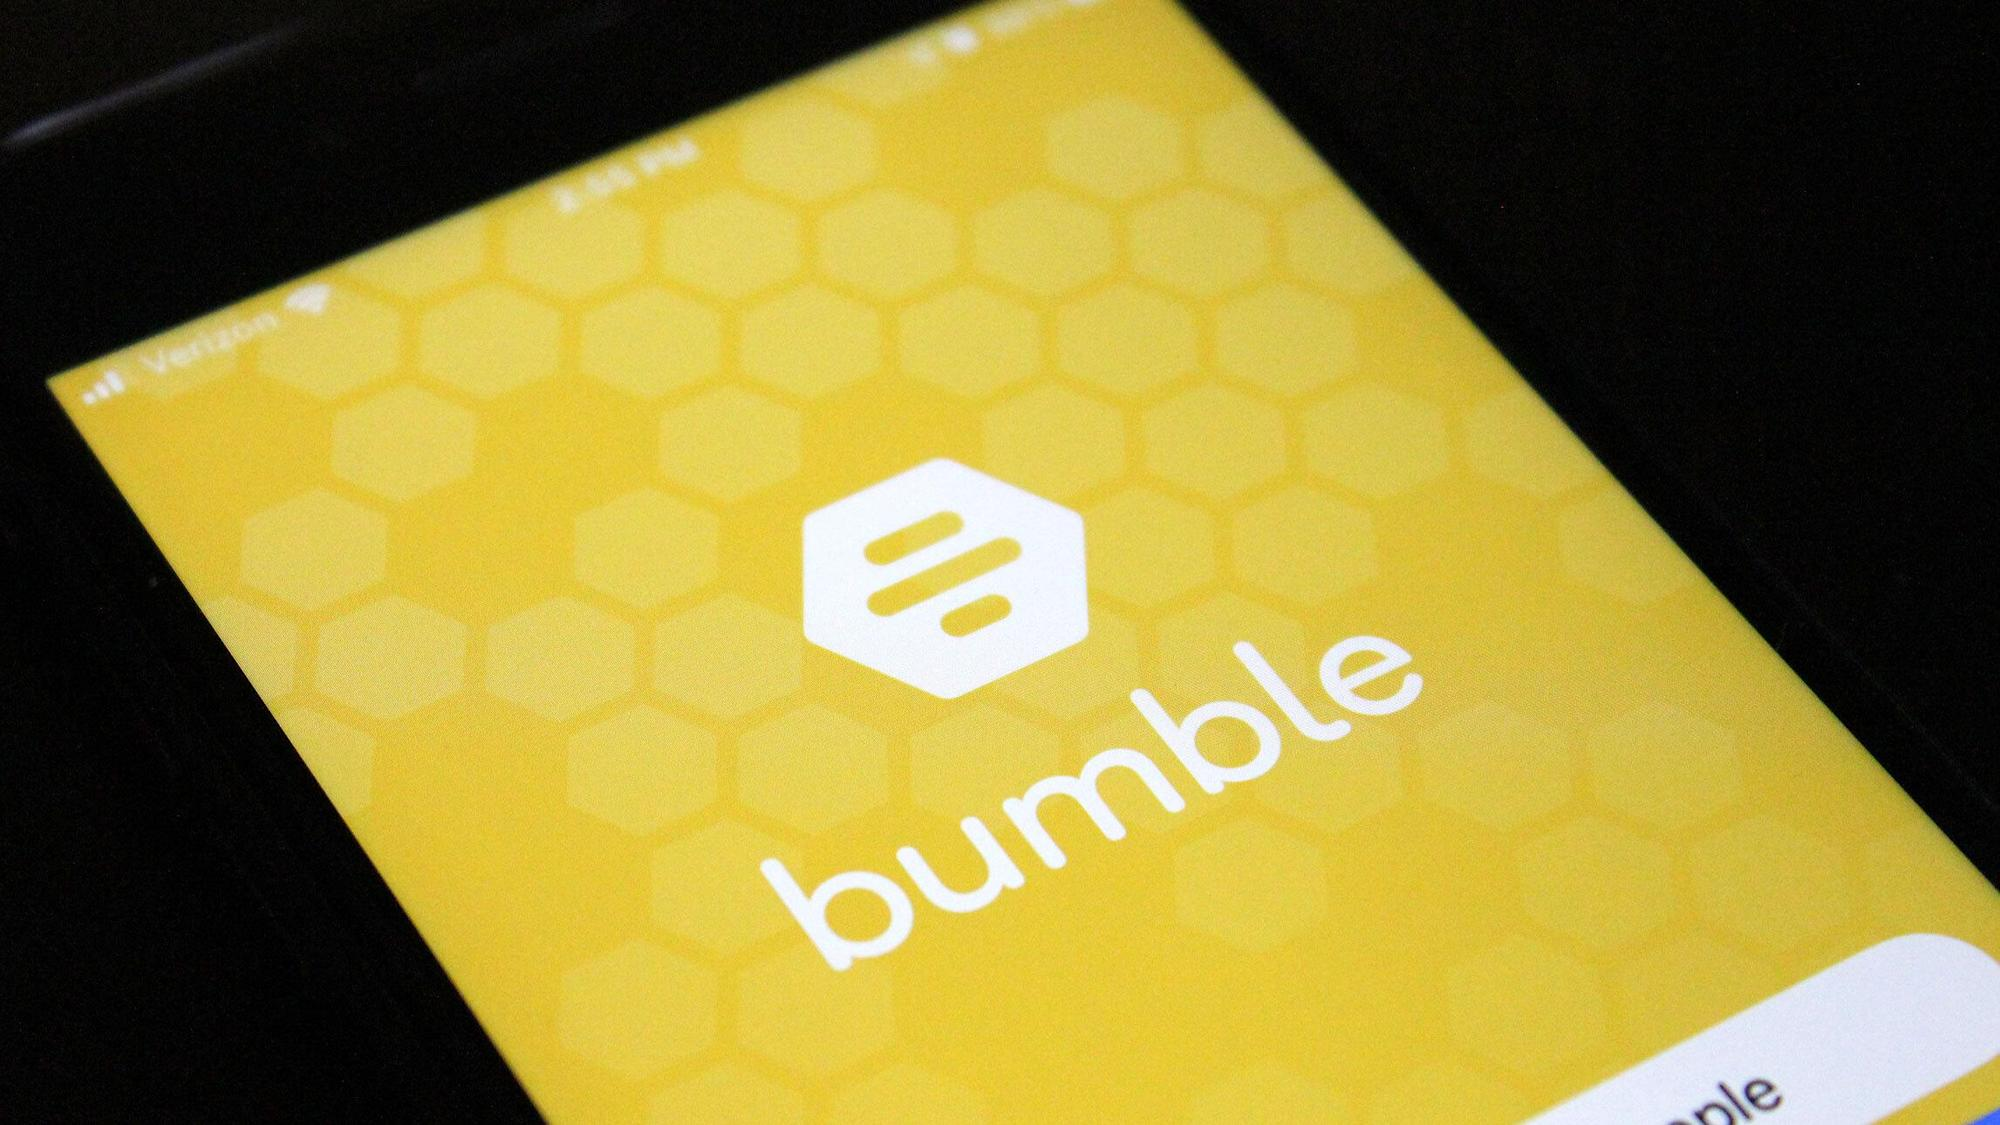 Bumble files to go public